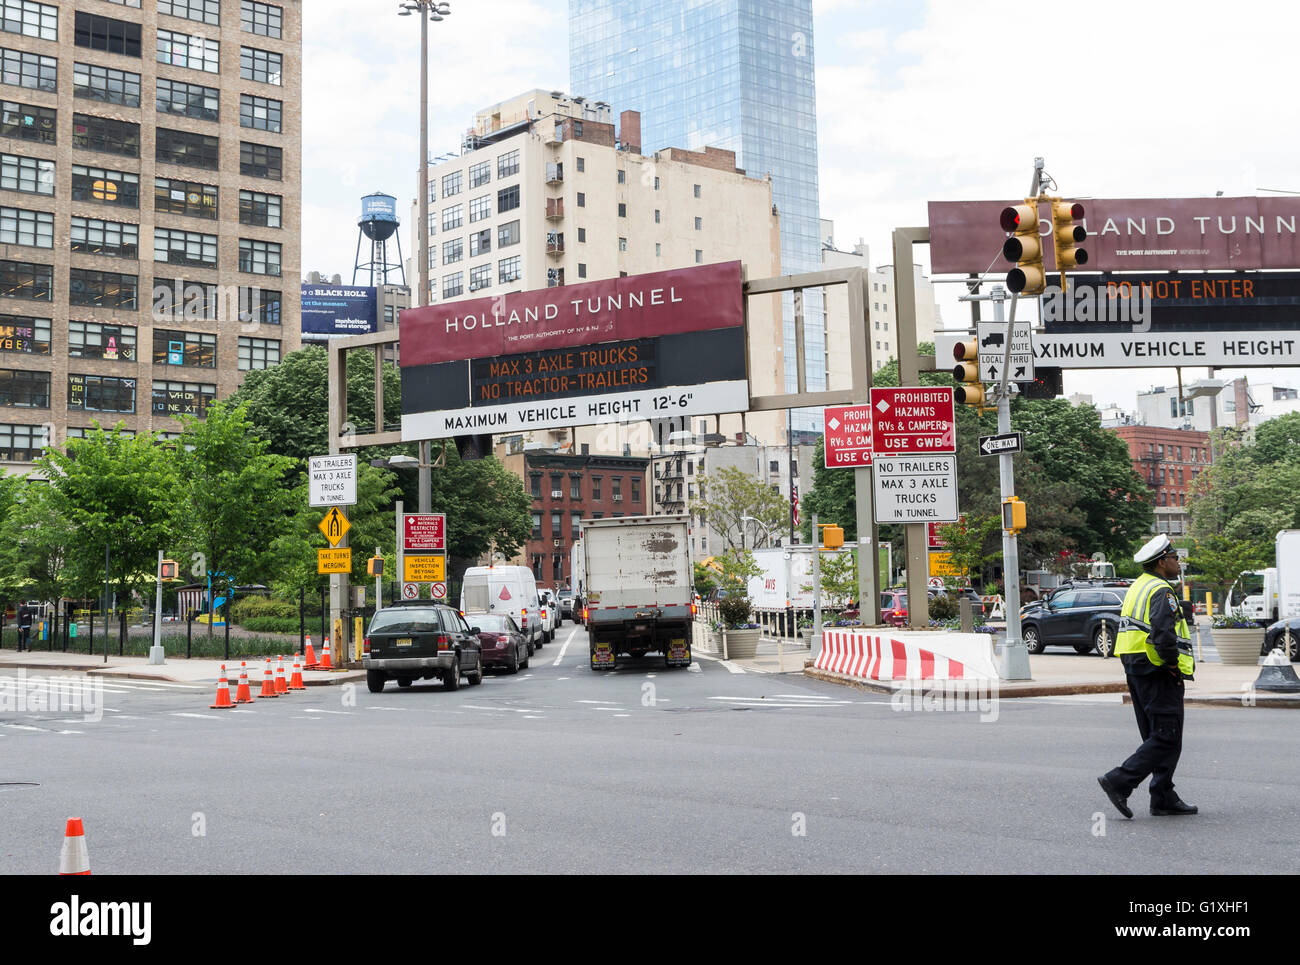 Entrance to Holland Tunnel Hudson River crossing in Manhattan at Canal Street with traffic cop directing traffic - Stock Image